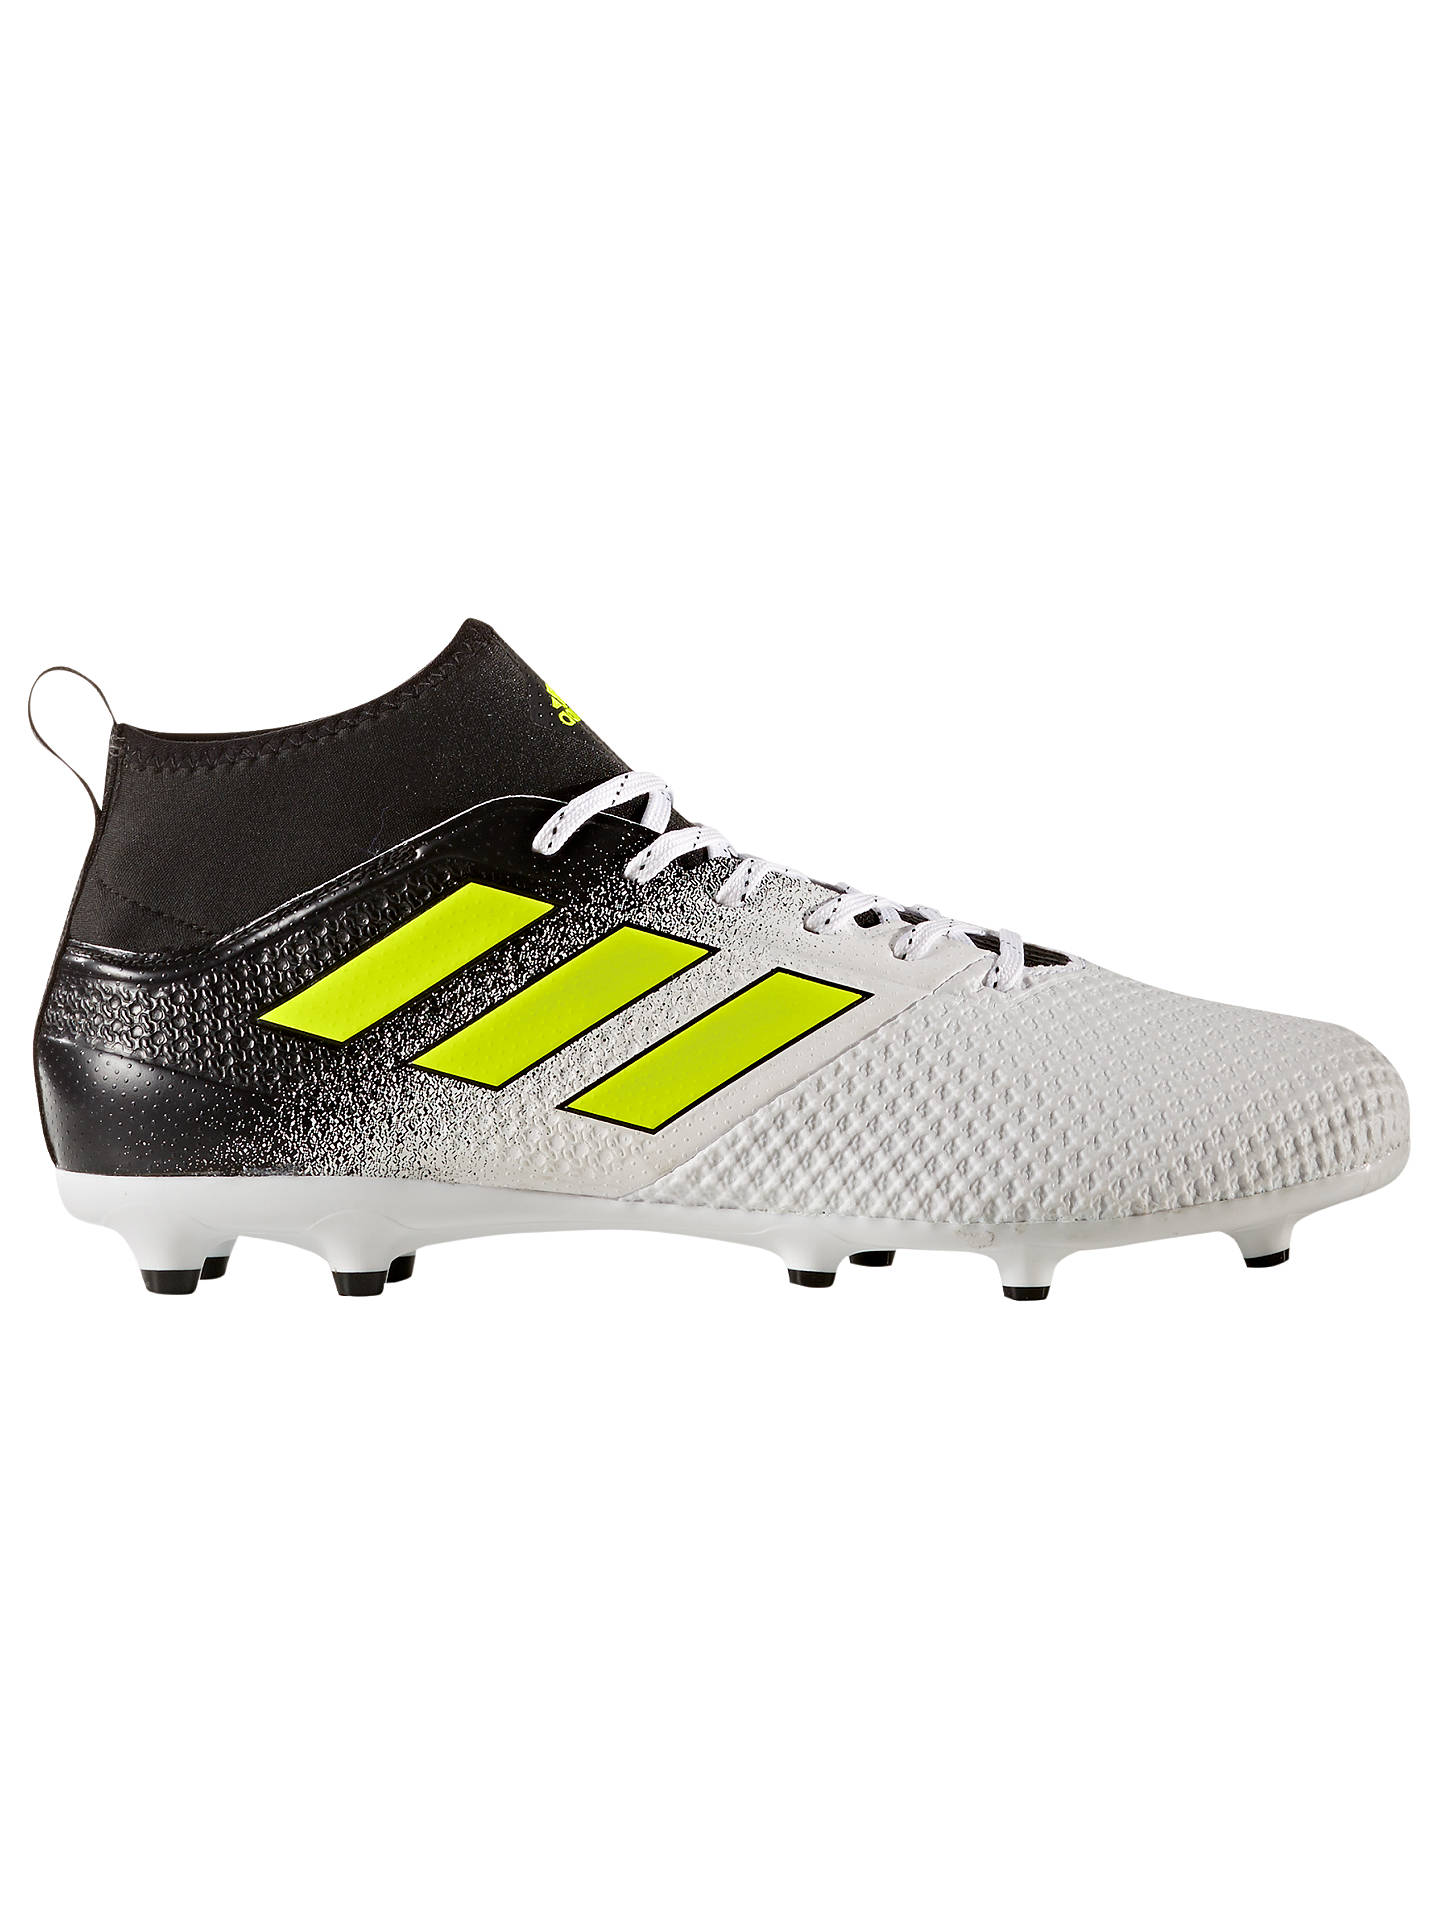 eb49cce82527 Buy adidas Ace 17.3 Primemesh AG Men s Firm Ground Football Boots